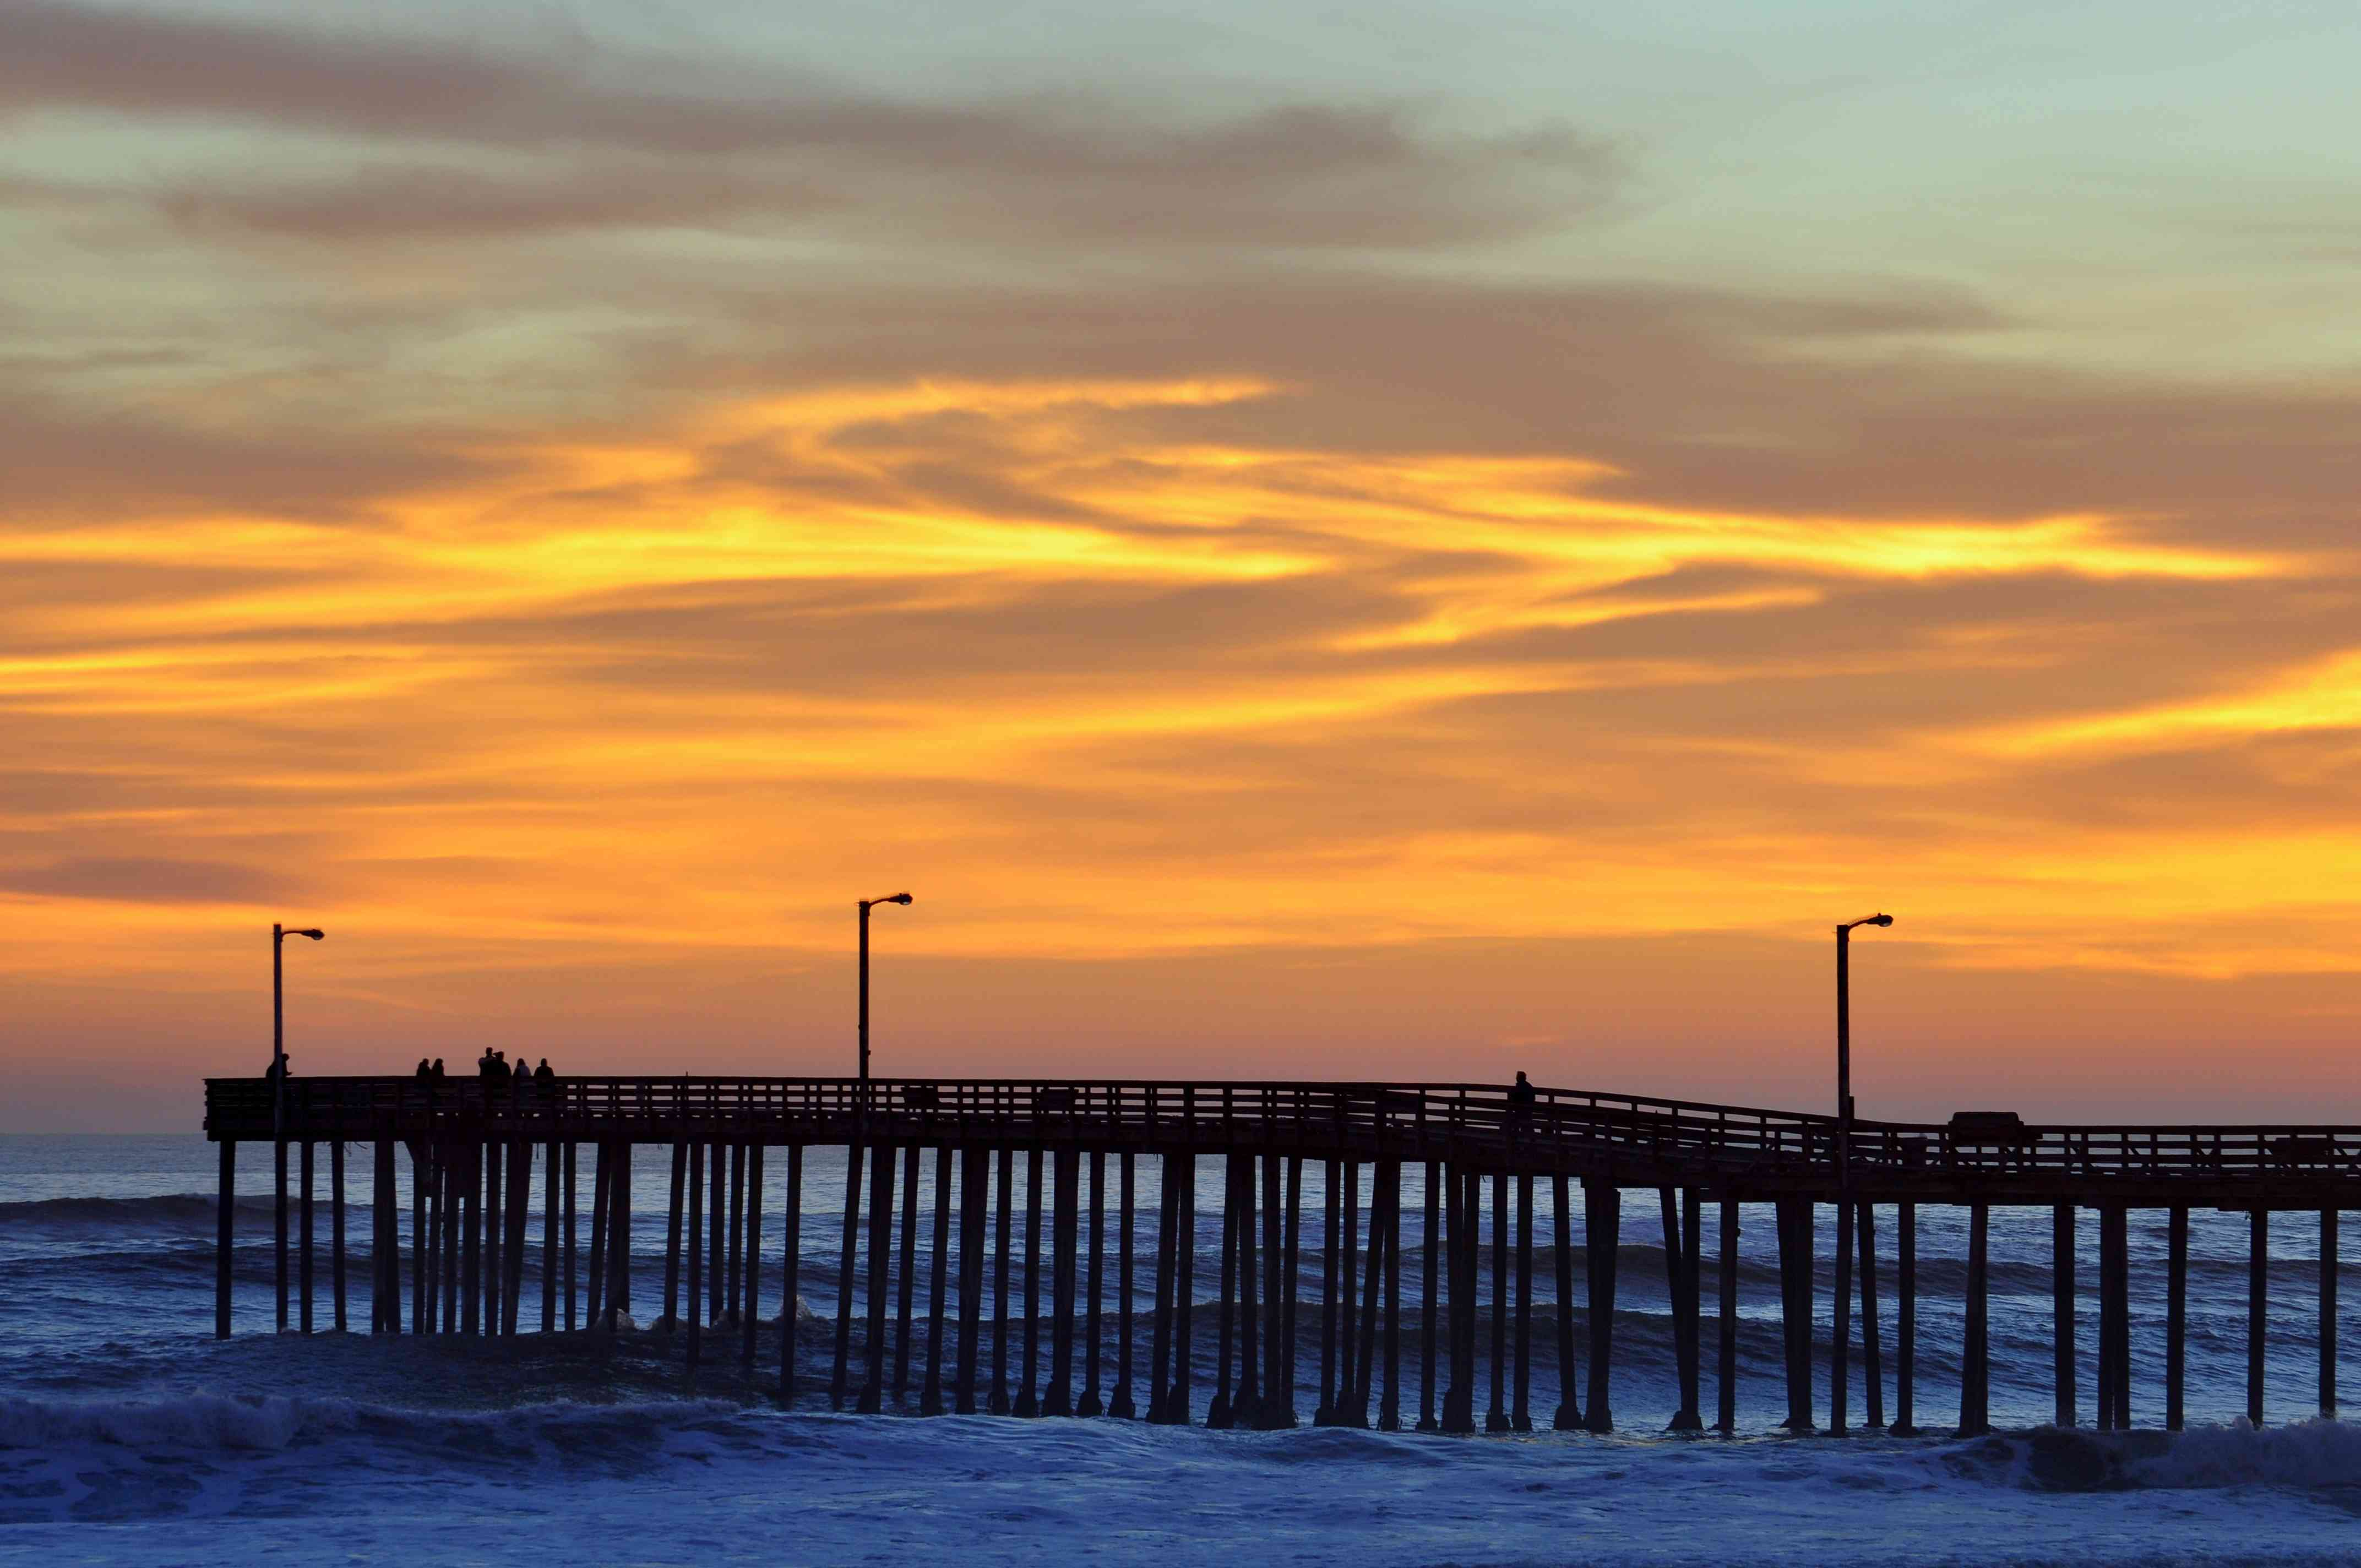 Cayucos Pier silhouetted by the sunset